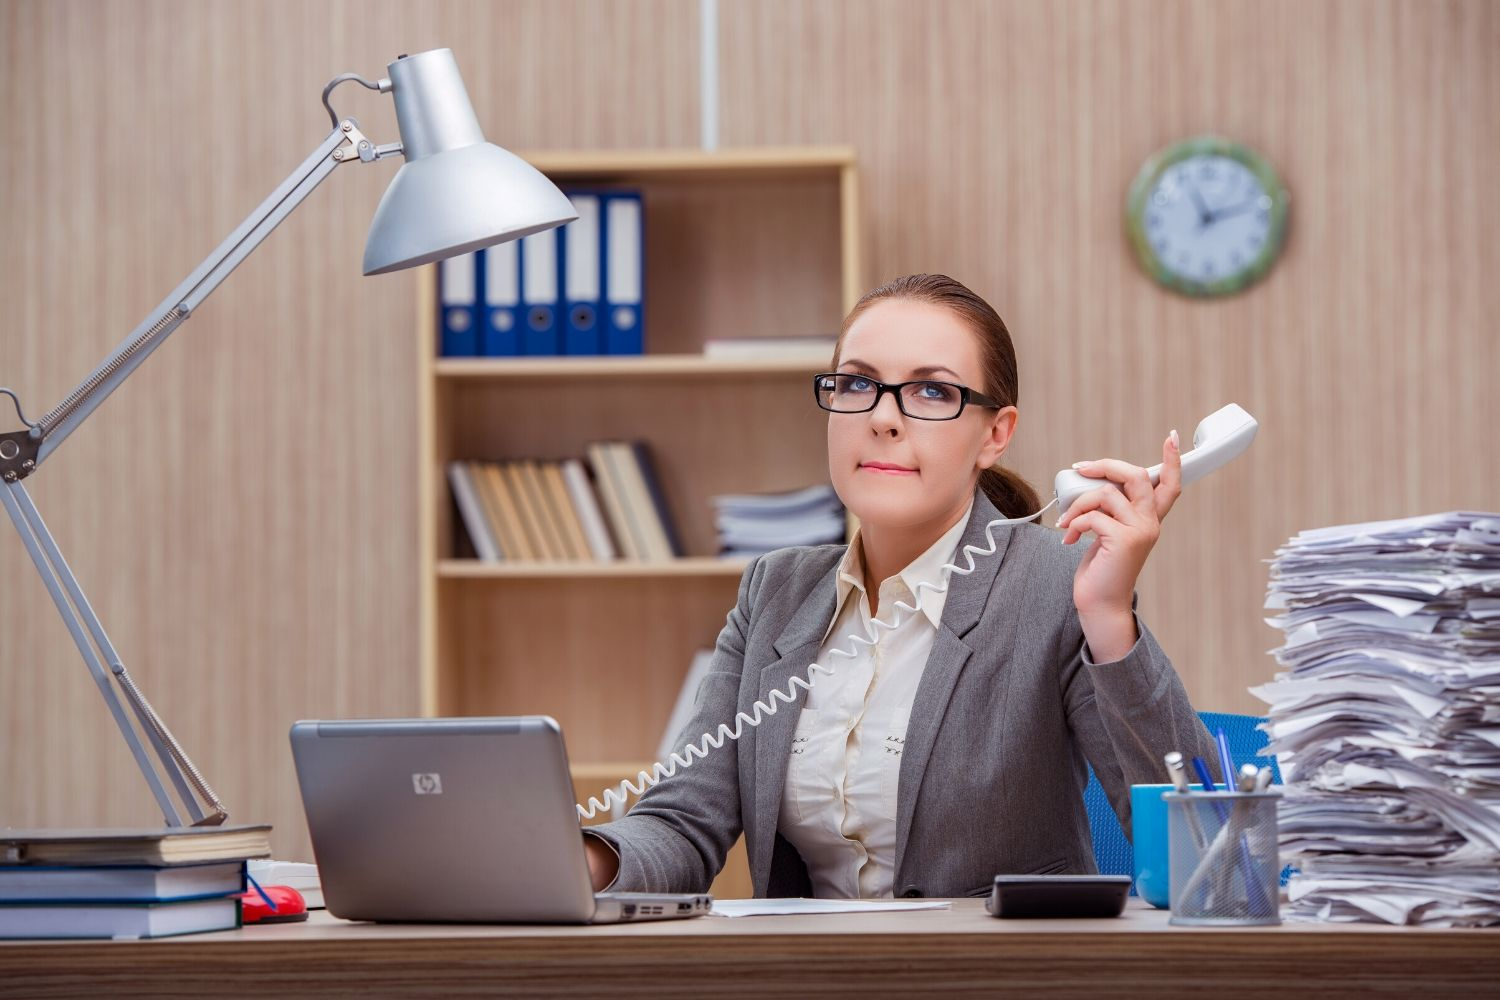 What to Do When Your Boss Doesn't Communicate With You?